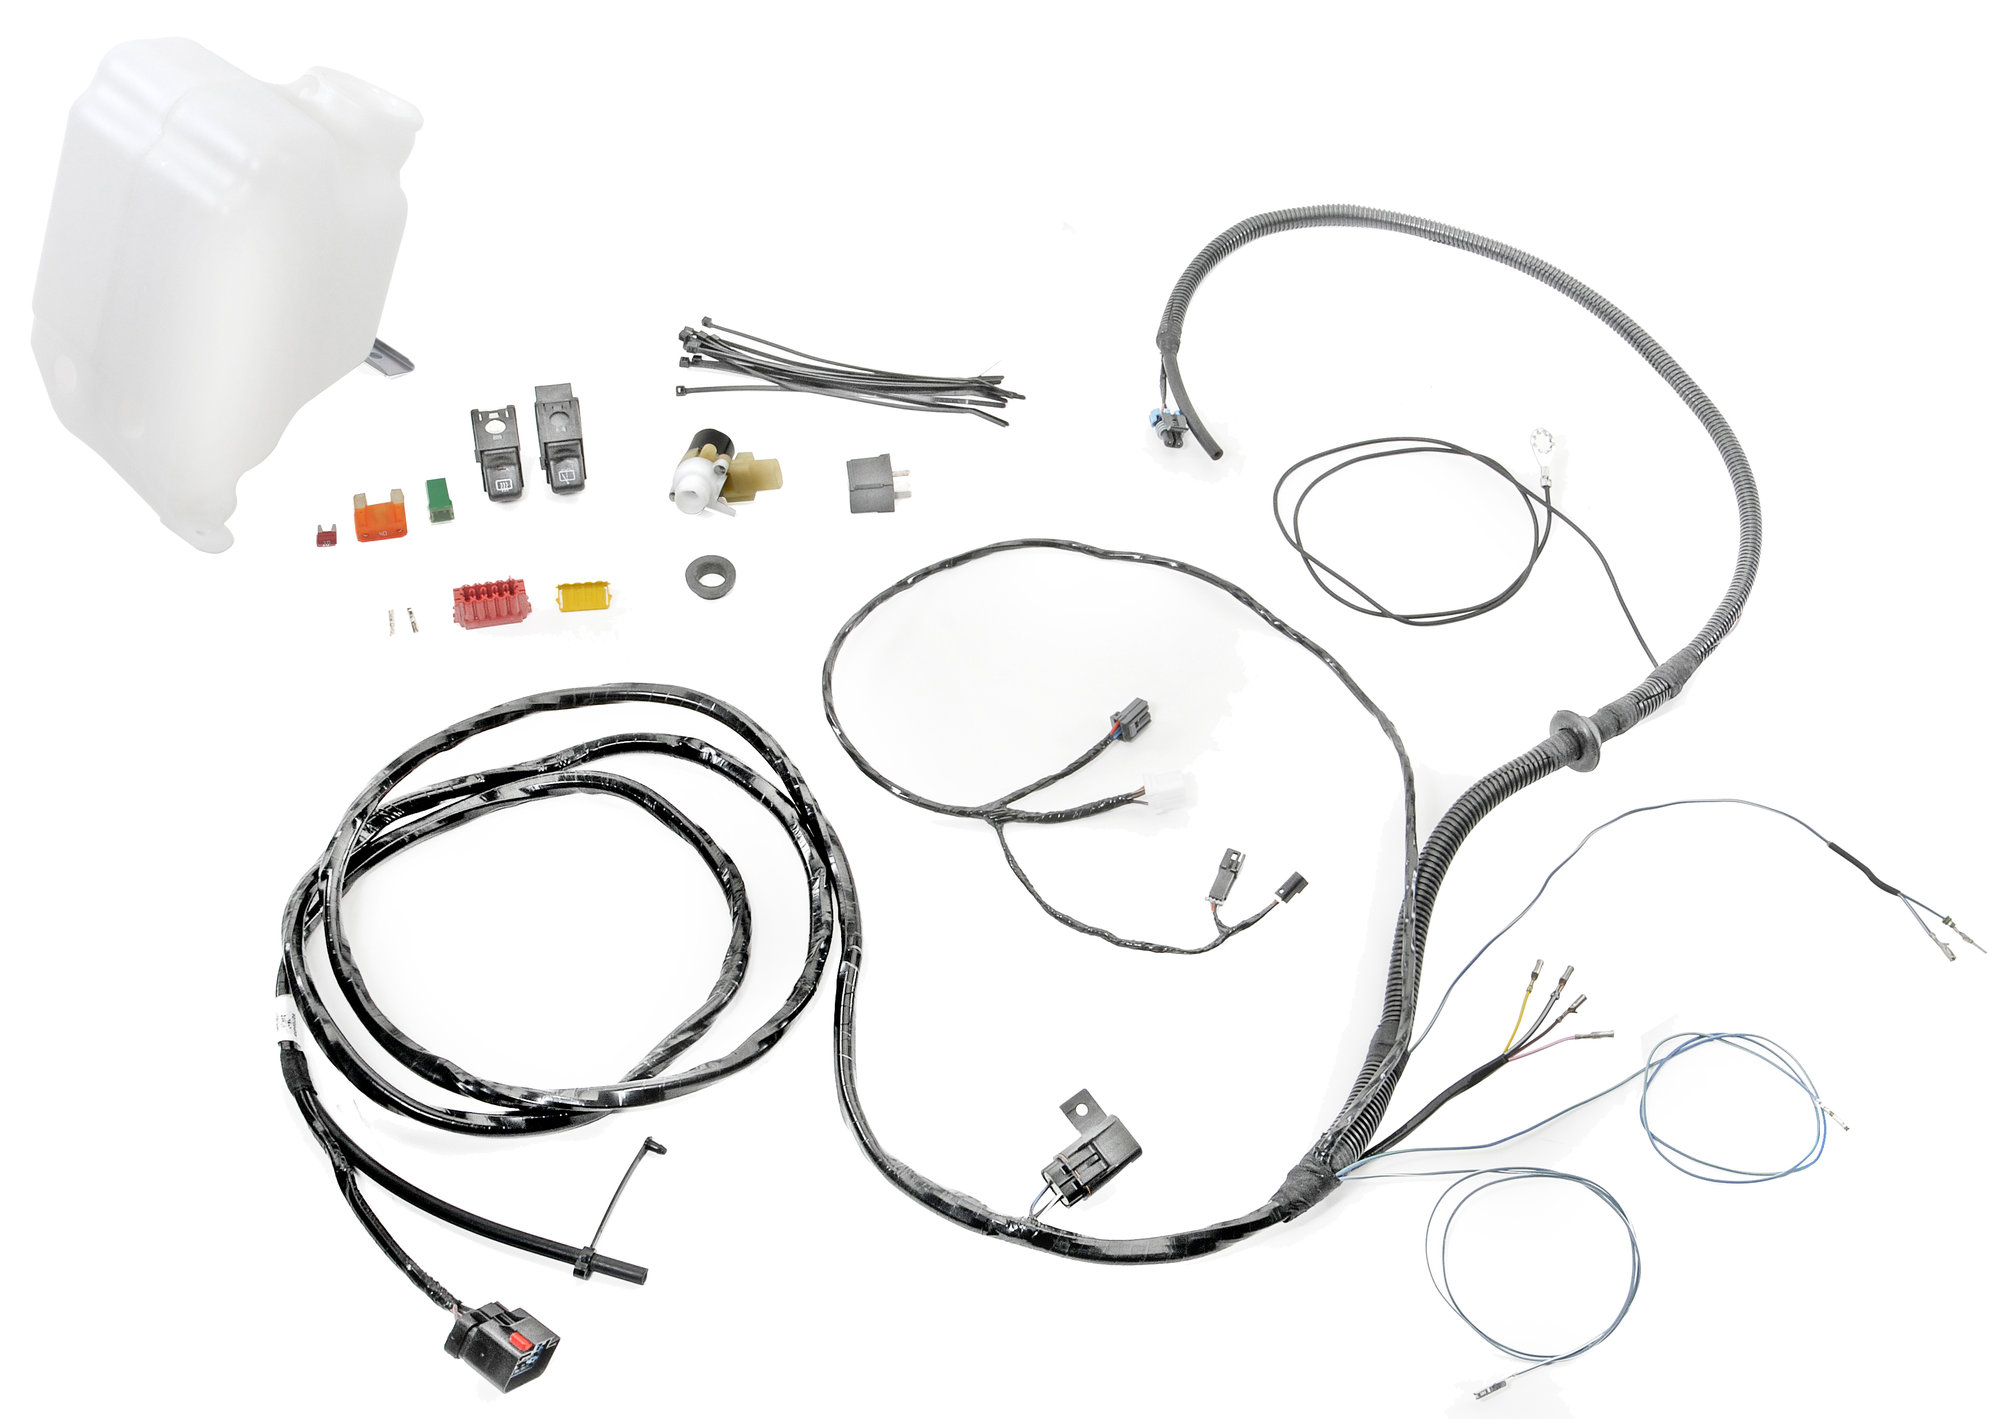 Mopar Hardtop Wiring Kit for 97-00 Jeep Wrangler TJ with